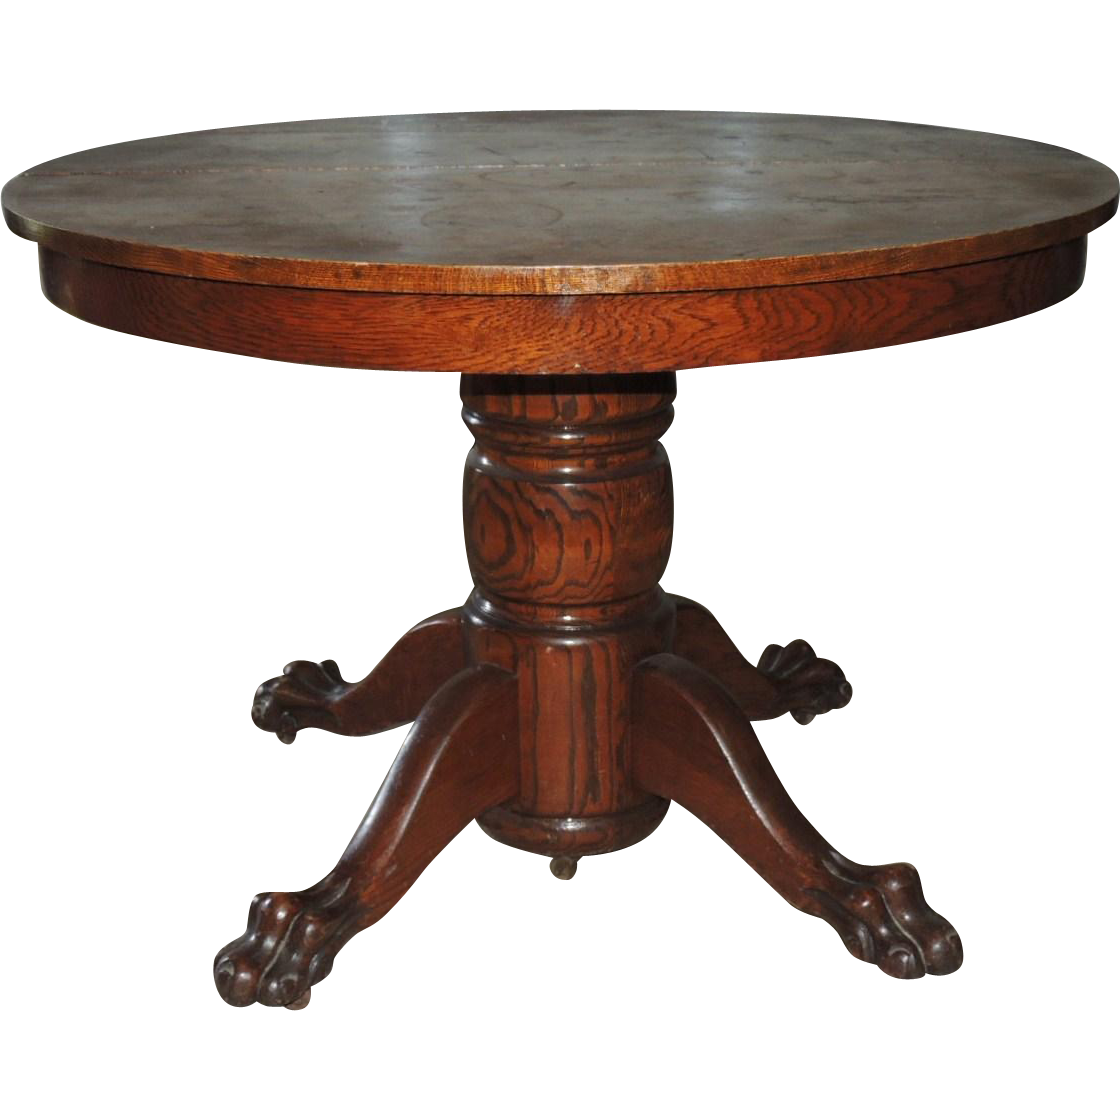 Antique Victorian Round Oak Paw Foot Banquet Dining Table Extends Up To  7.75 Feet